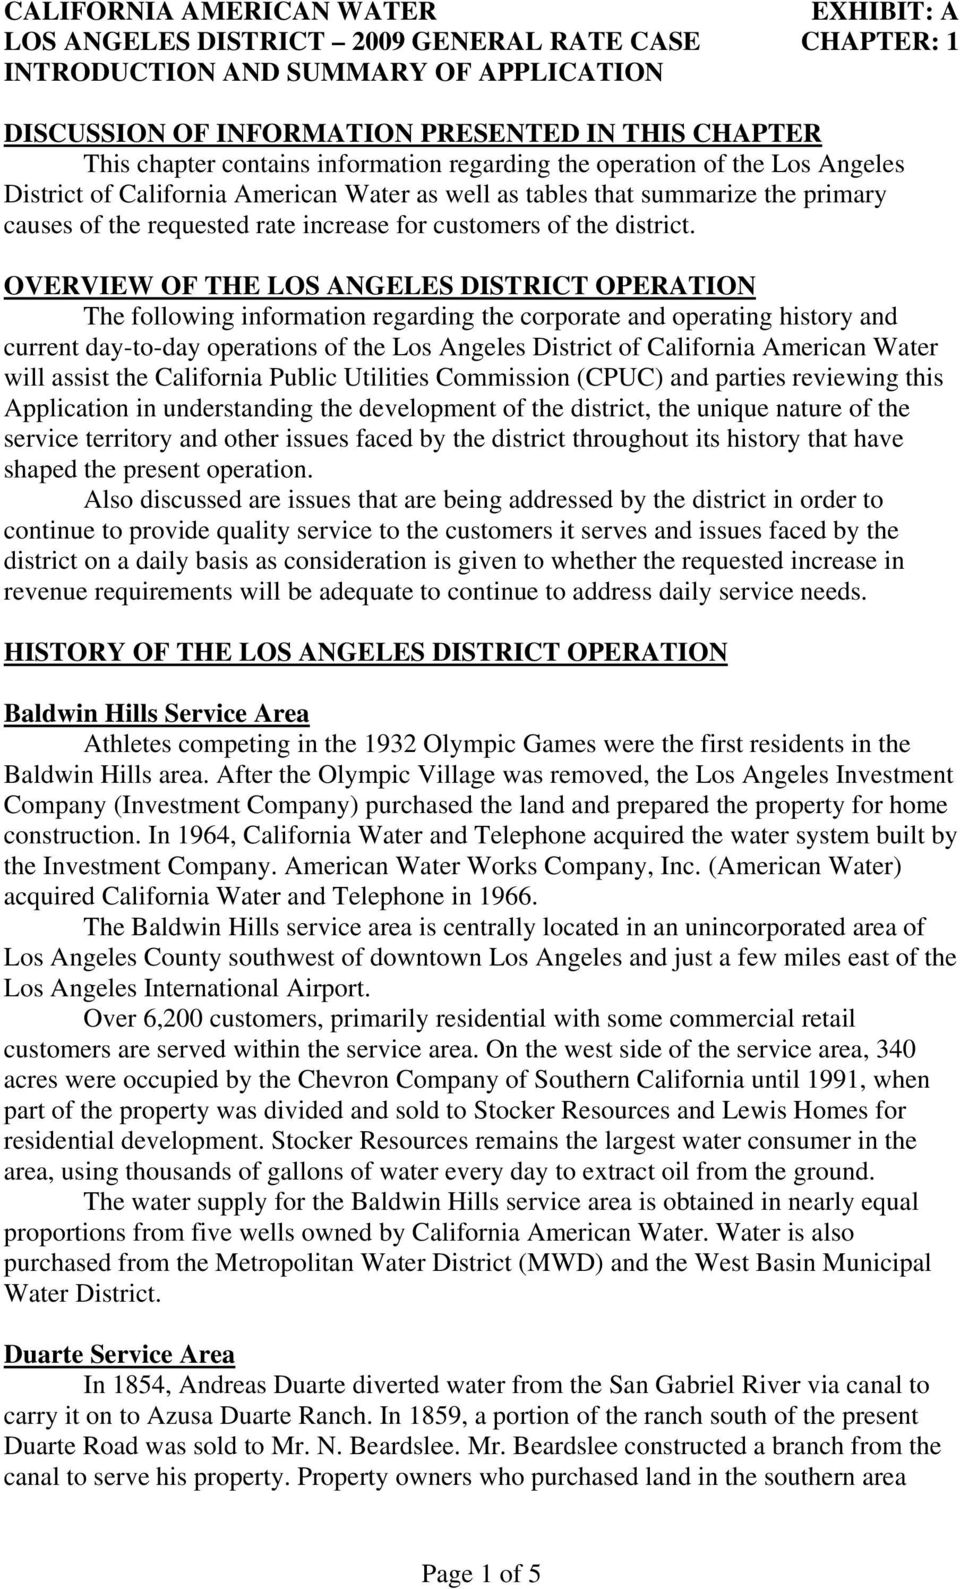 OVERVIEW OF THE LOS ANGELES DISTRICT OPERATION The following information regarding the corporate and operating history and current day-to-day operations of the Los Angeles District of California